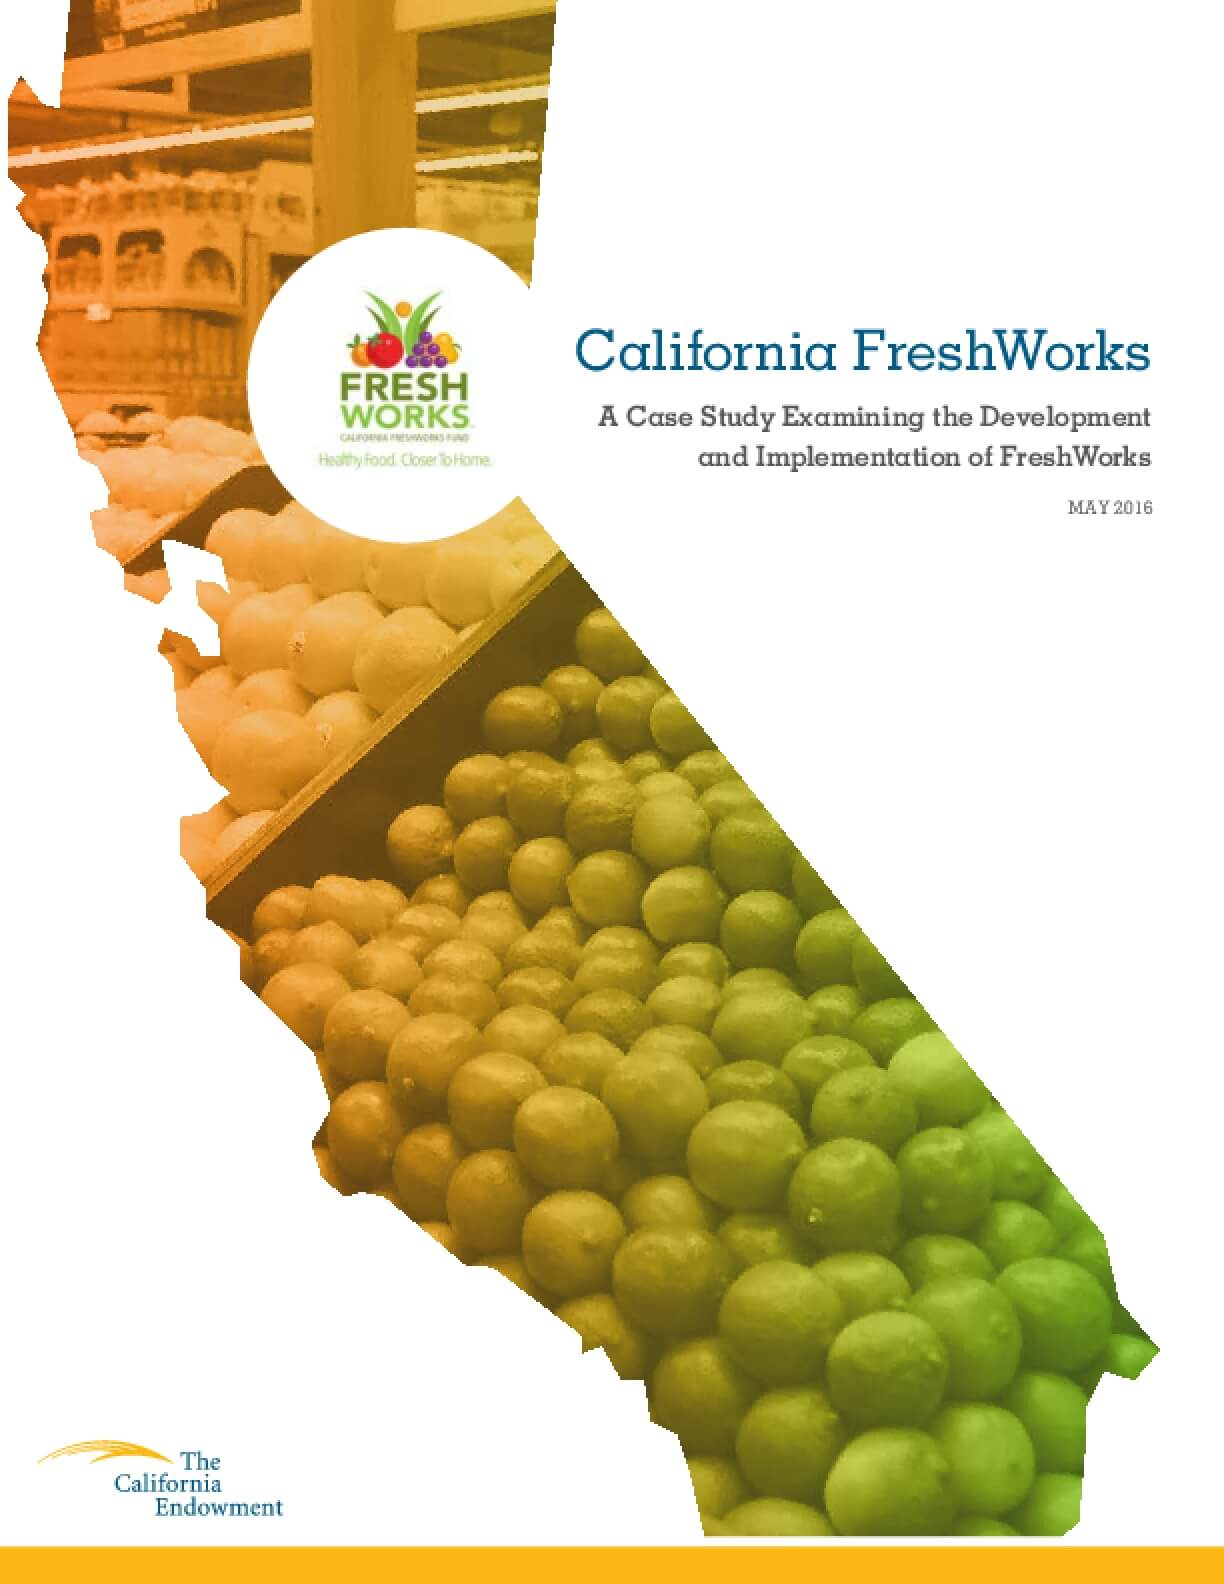 California FreshWorks: A Case Study Examining the Development and Implementation of FreshWorks